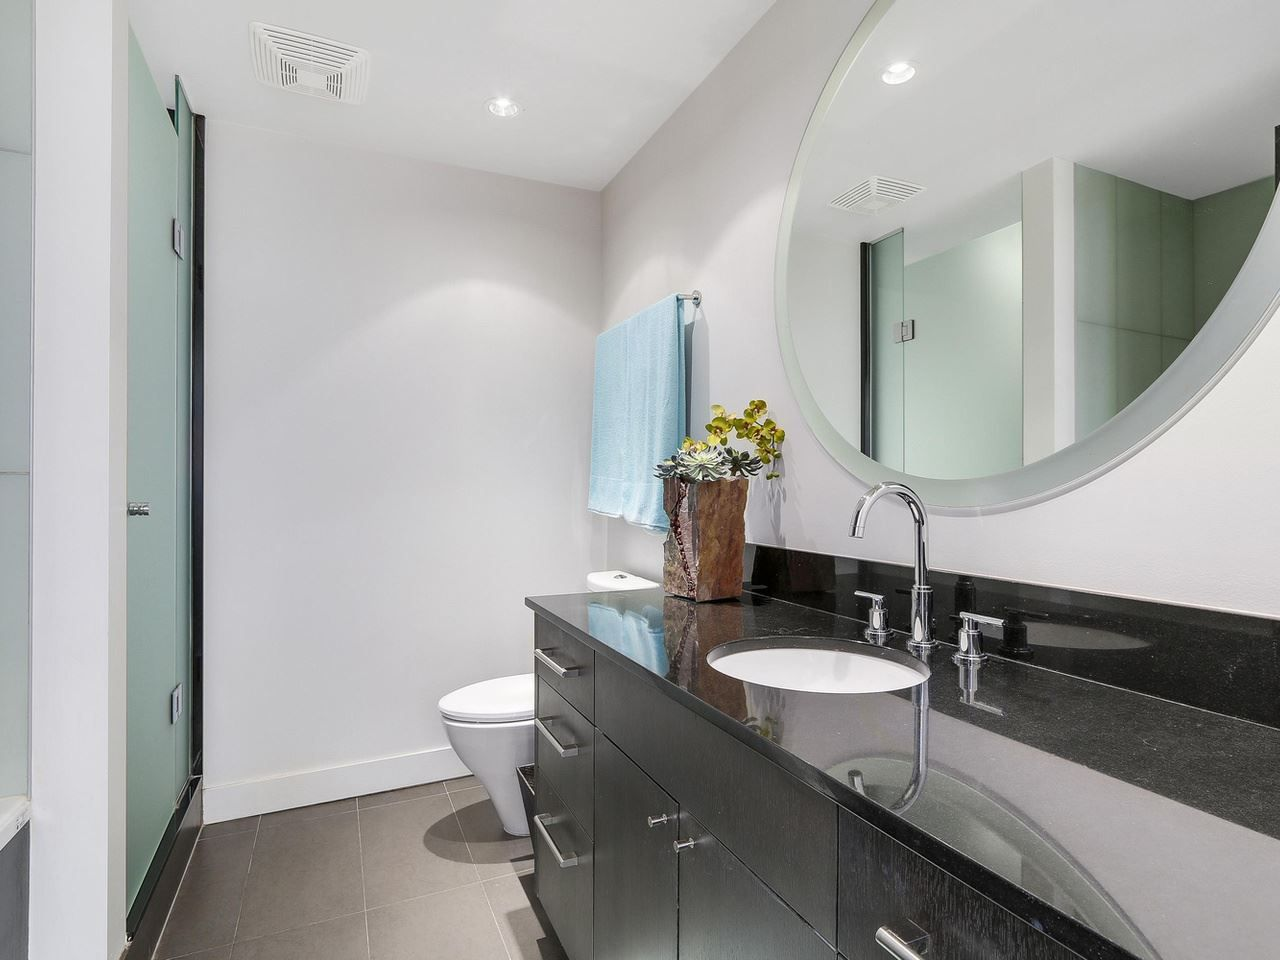 Photo 17: Photos: 401 1455 HOWE STREET in Vancouver: Yaletown Condo for sale (Vancouver West)  : MLS®# R2145939